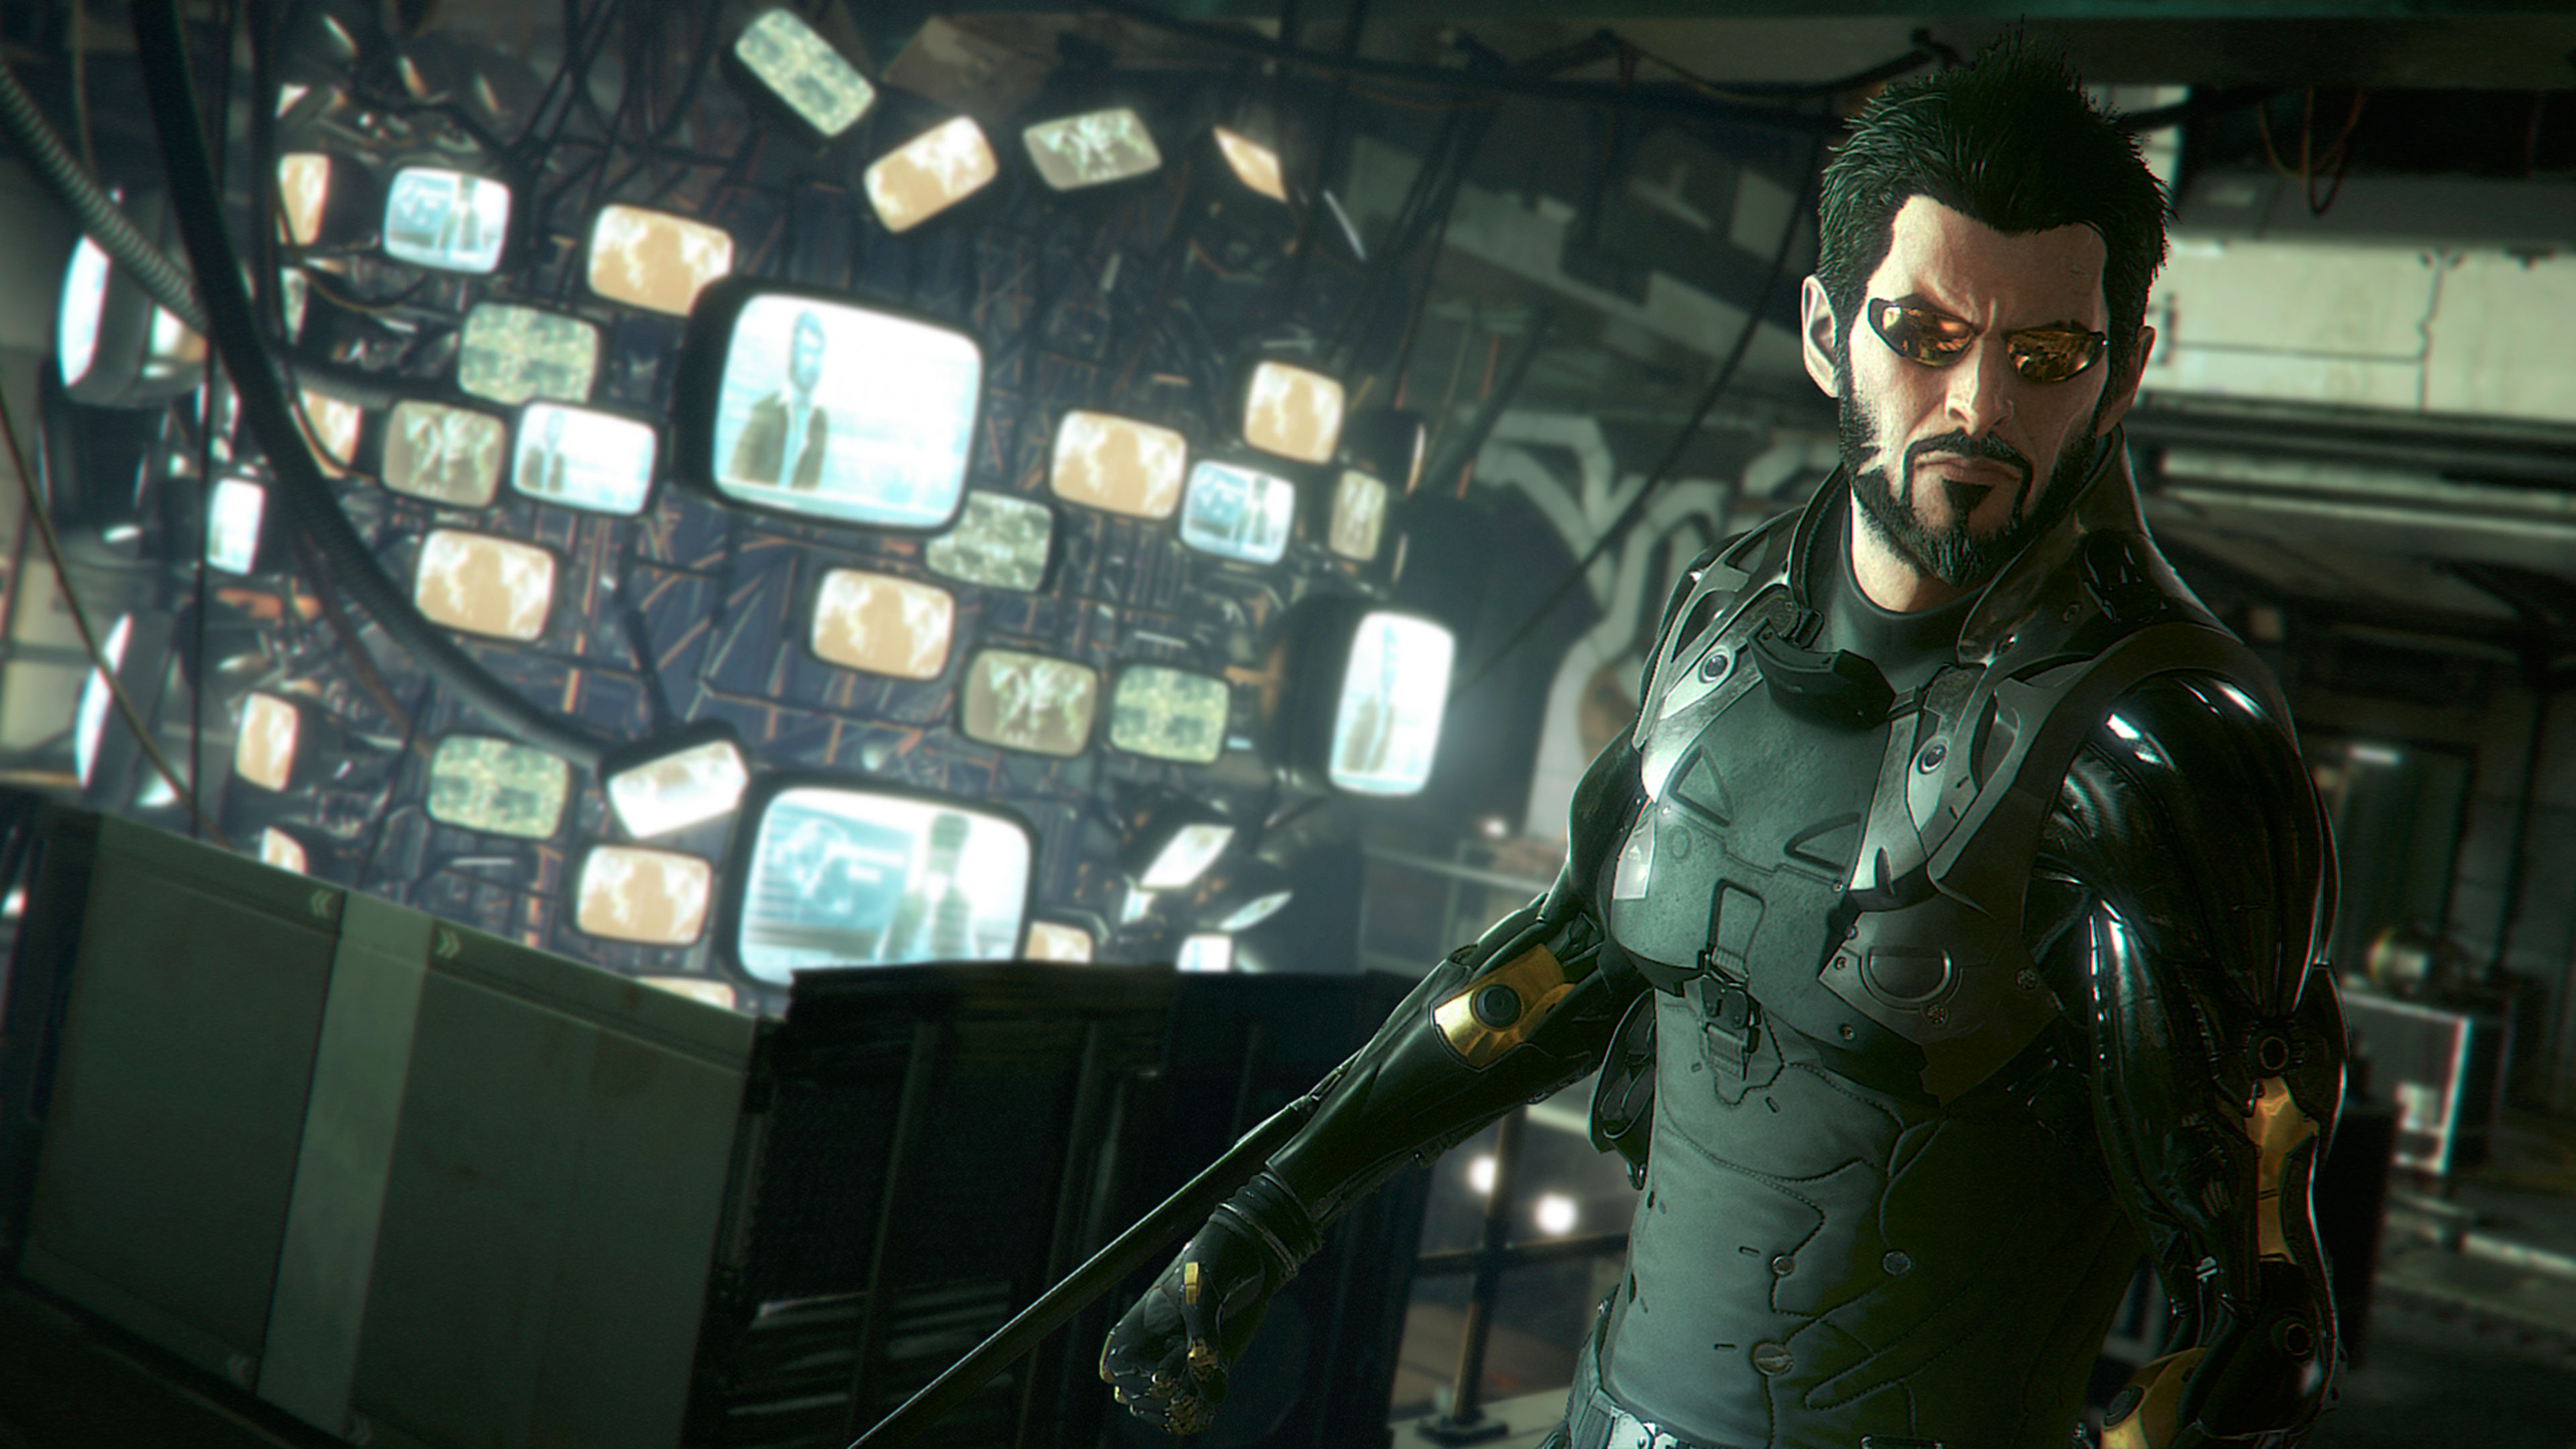 Deus Ex Mankind Divided Wallpapers In Ultra Hd 4k Gameranx